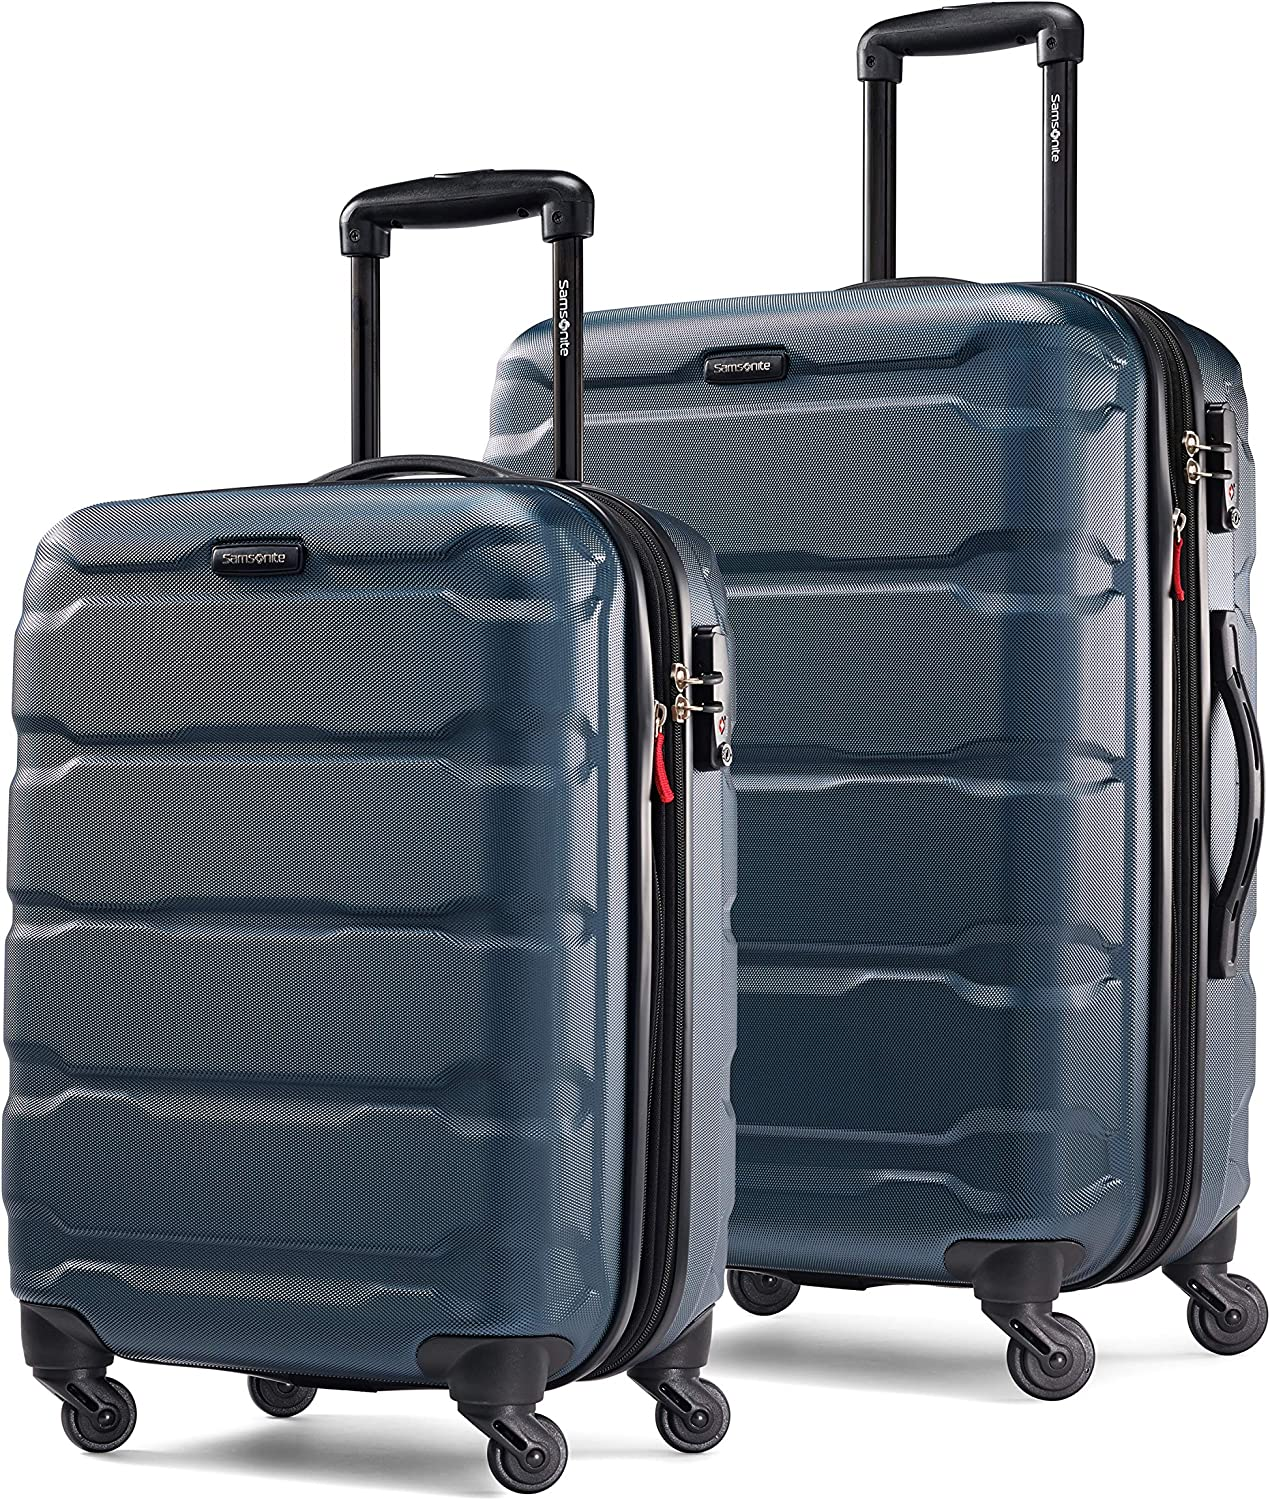 Samsonite Omni PC Hardside Expandable Luggage with Spinner Wheels, Teal, 2-Piece Set (20/24)